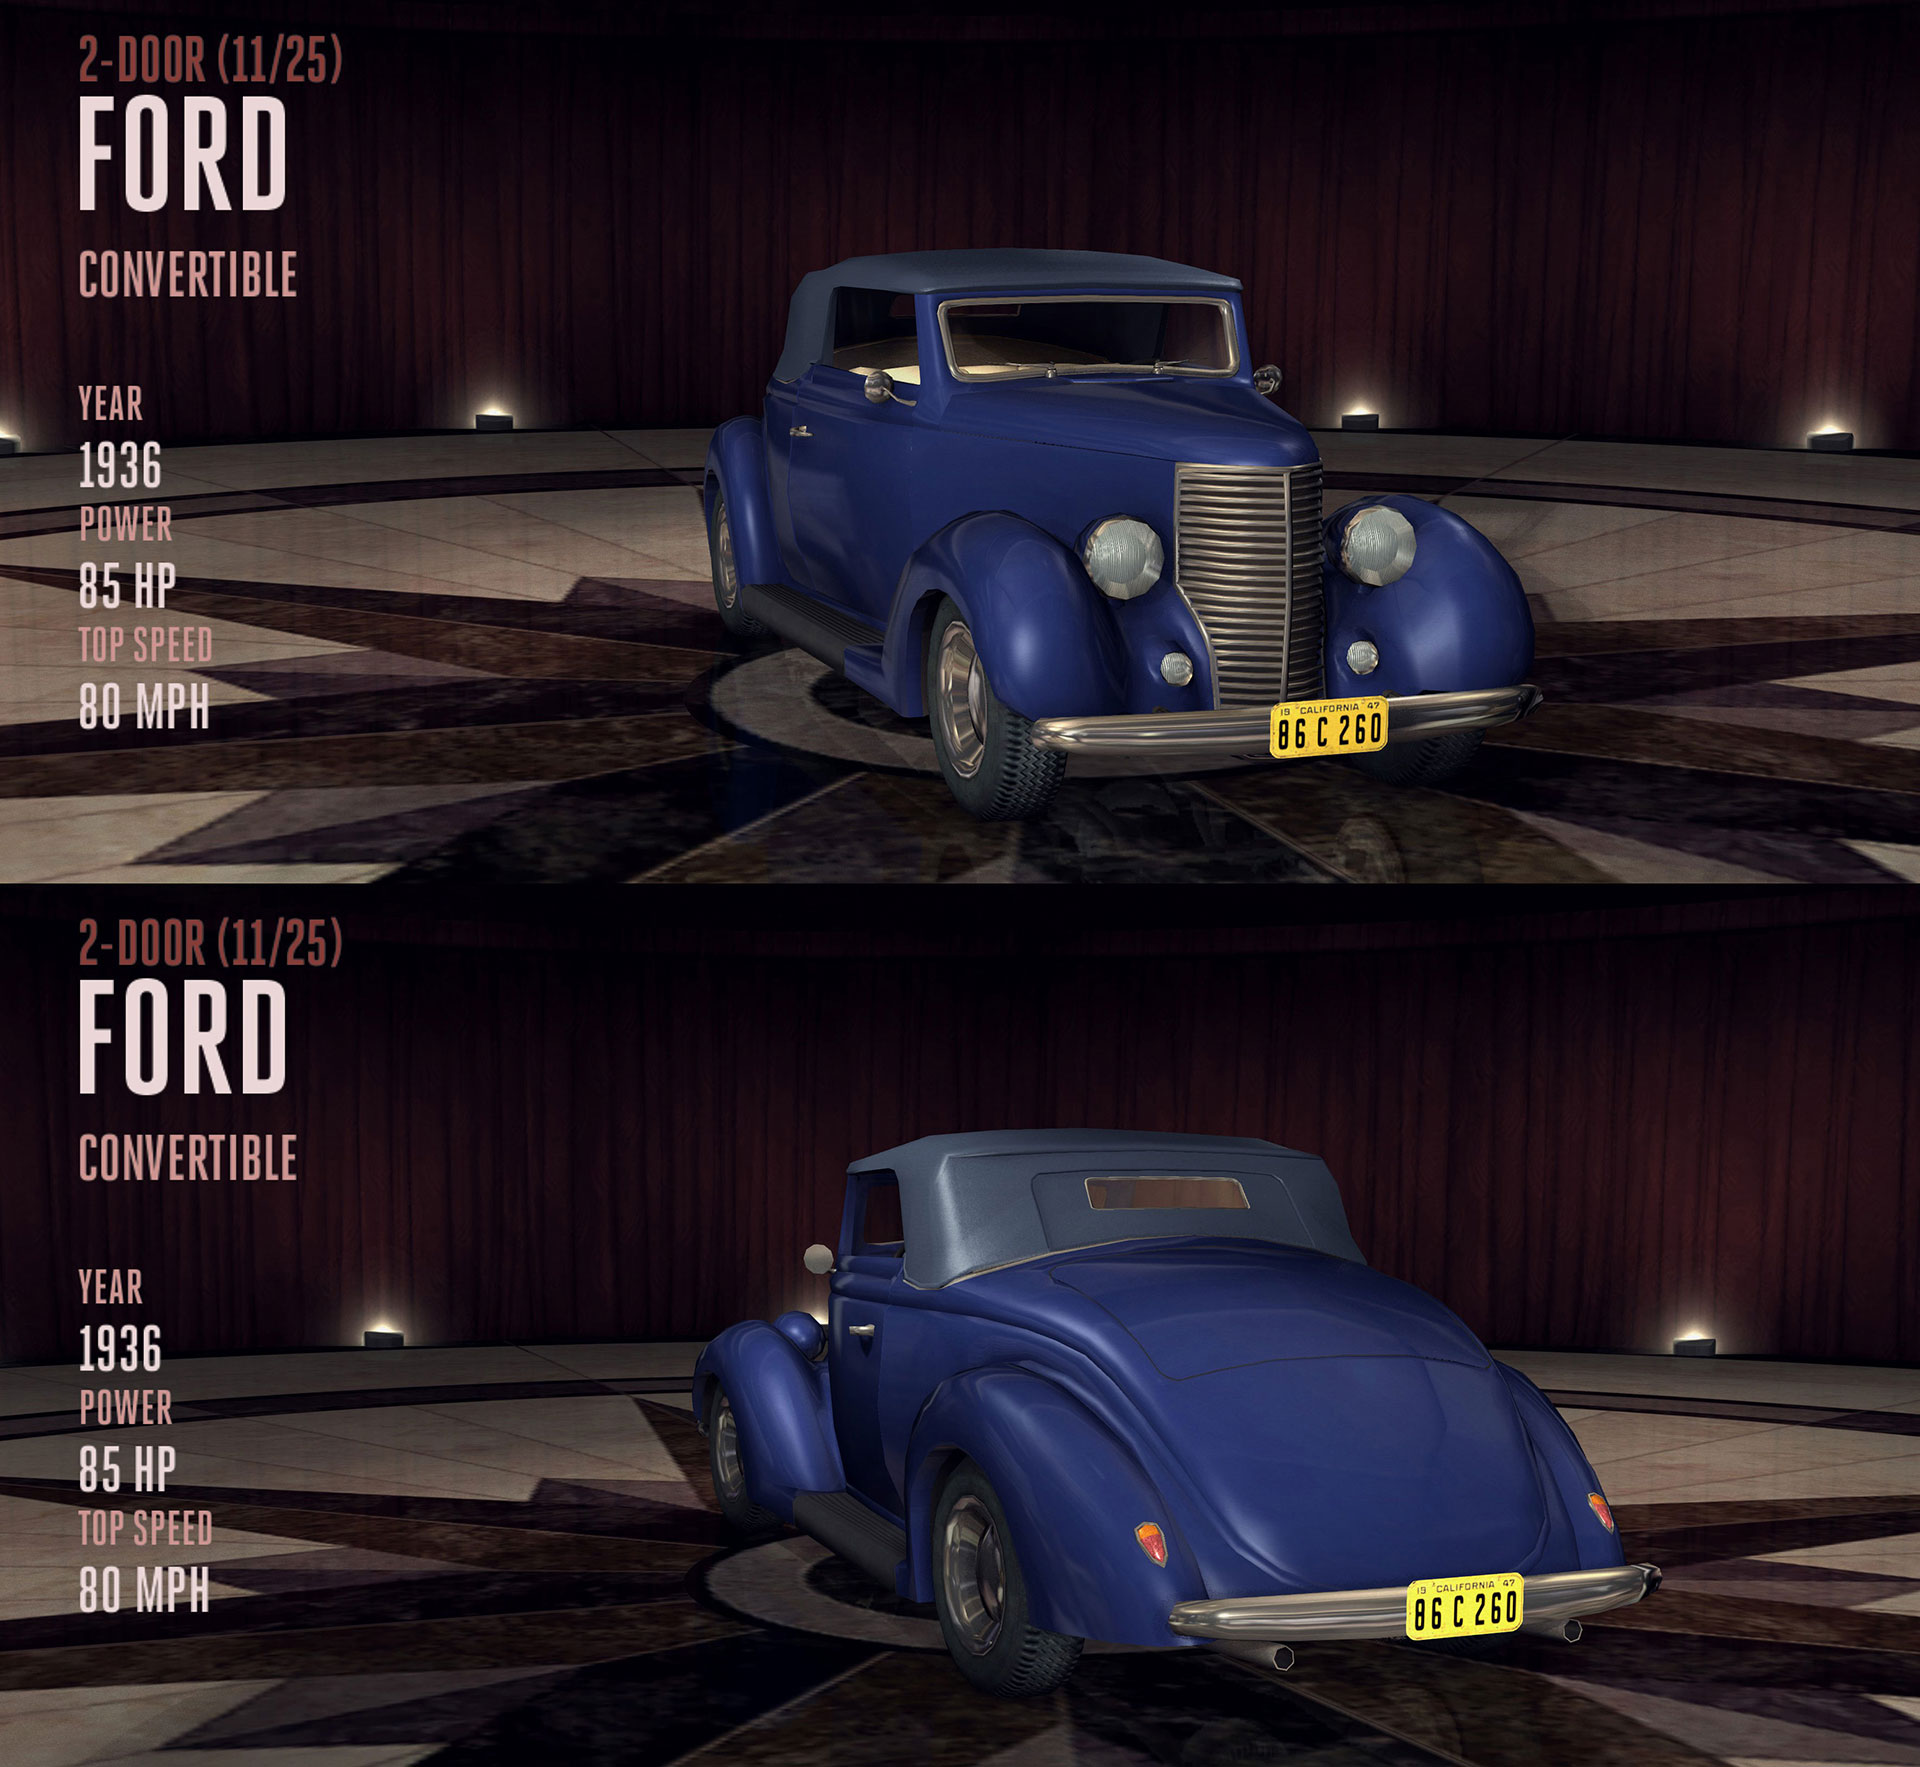 File:1936-ford-convertible.jpg